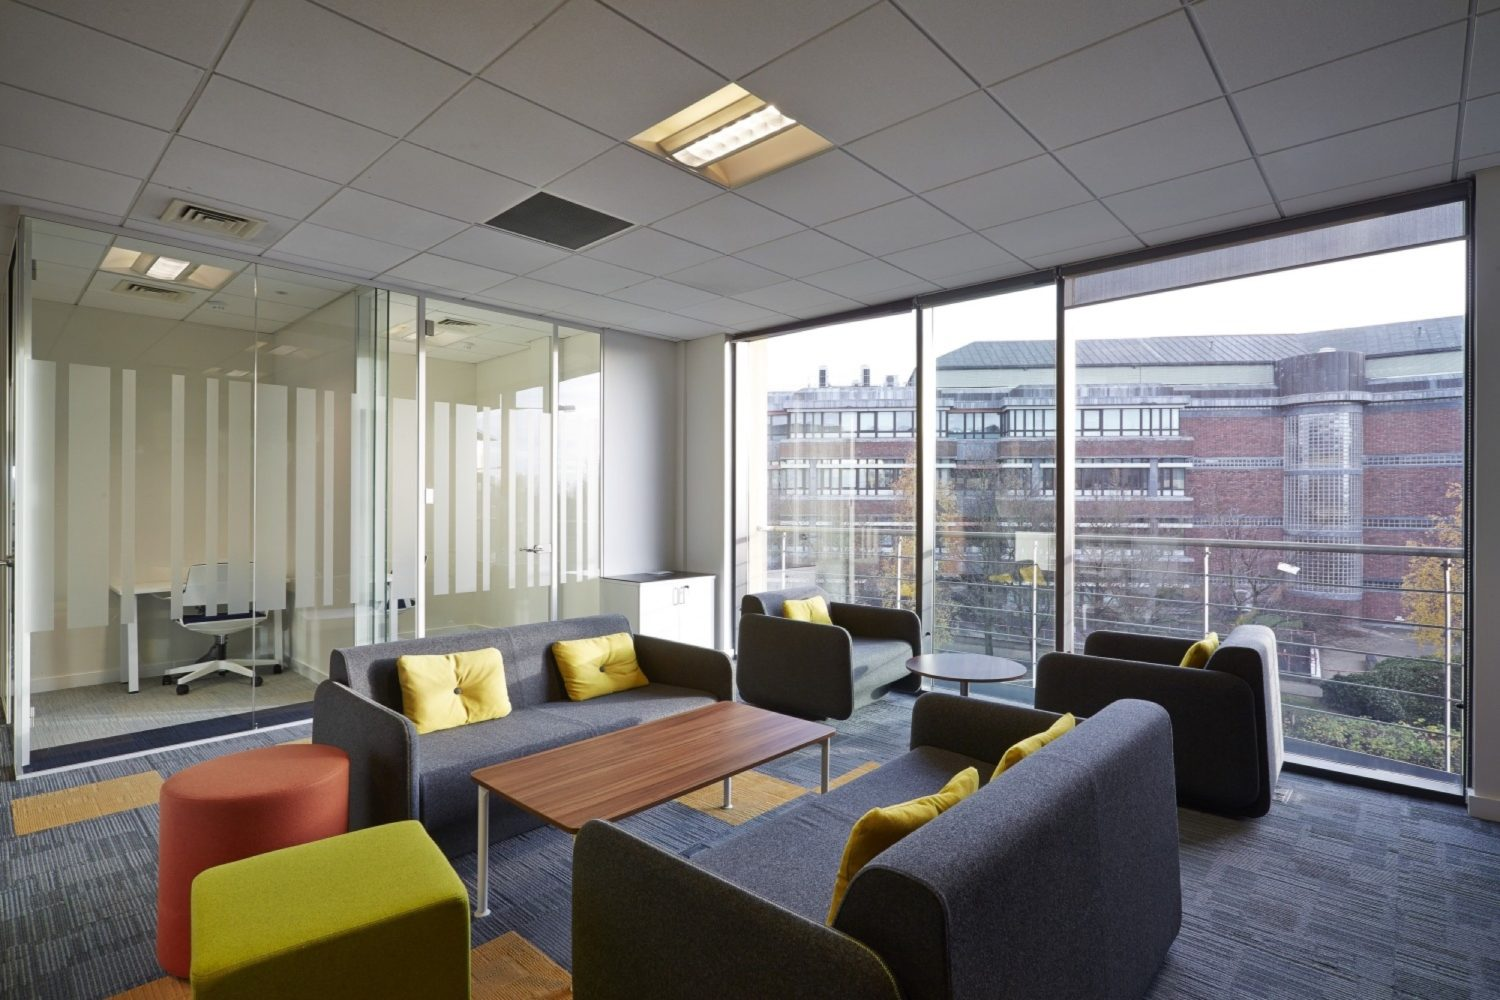 Npower breakout area fit out